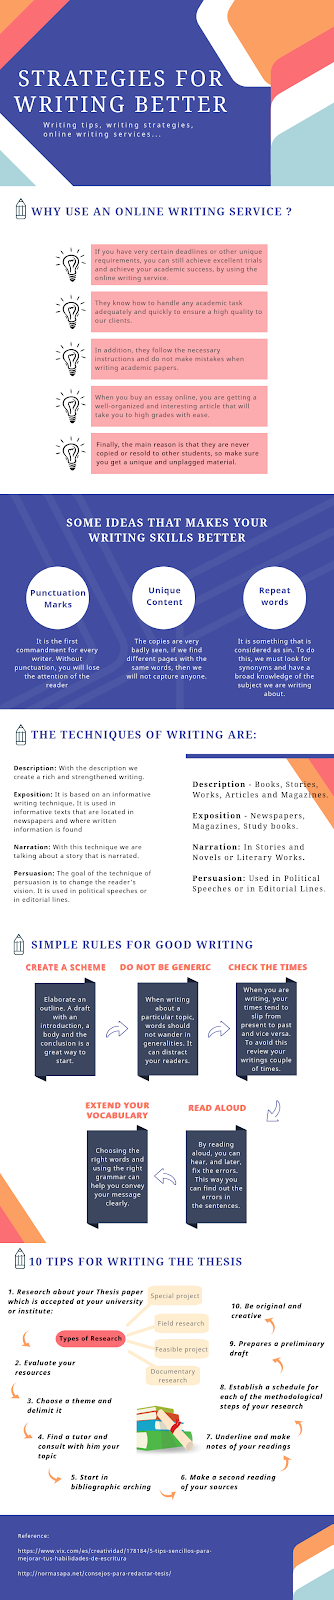 Tips For Writing Thesis Conference Paper